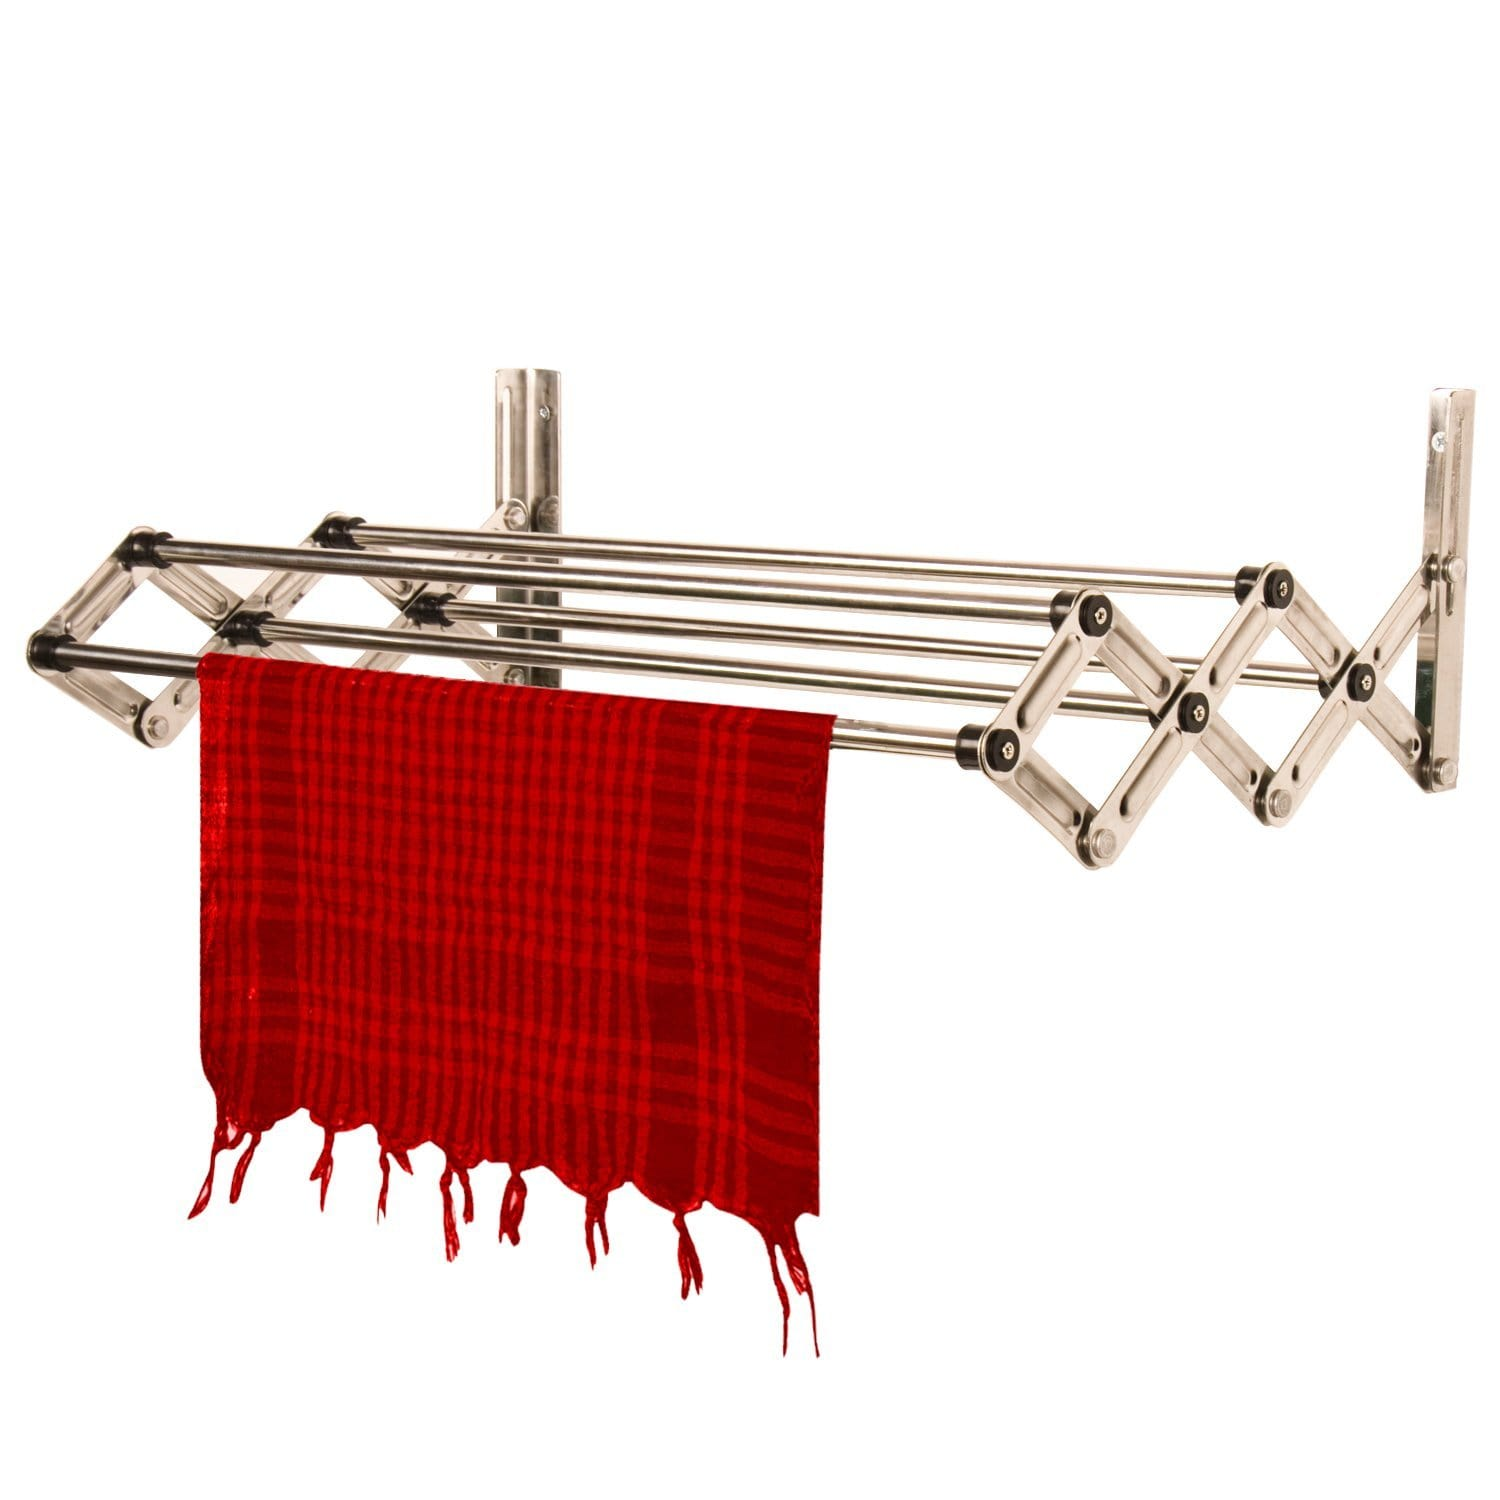 SU KASSA Stainless Steel Wall Mounted Cloth Dryer Stand with 5 Lines